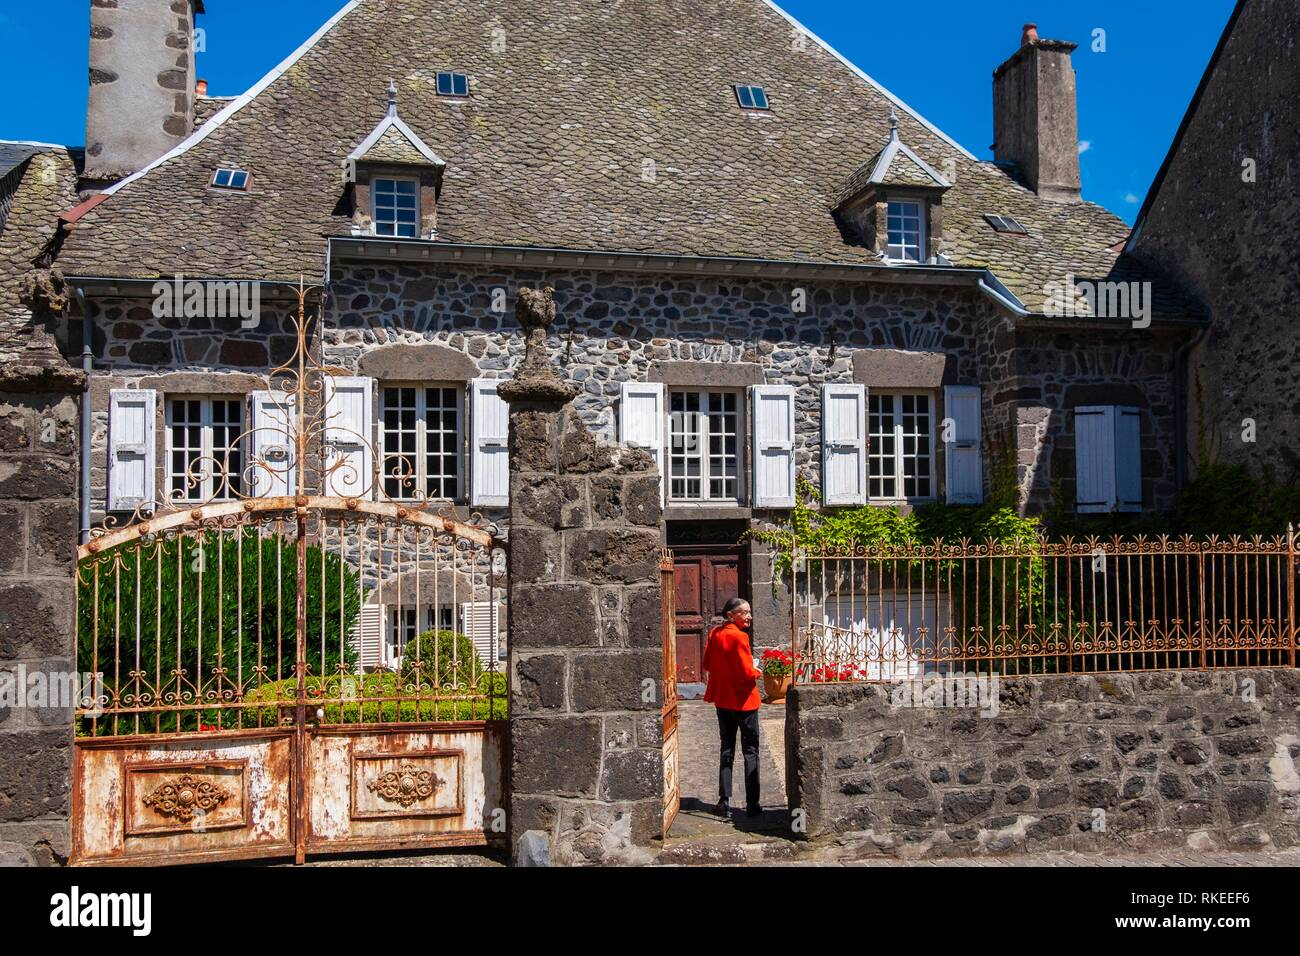 France, Auvergne, Cantal, at the village of Salers. - Stock Image